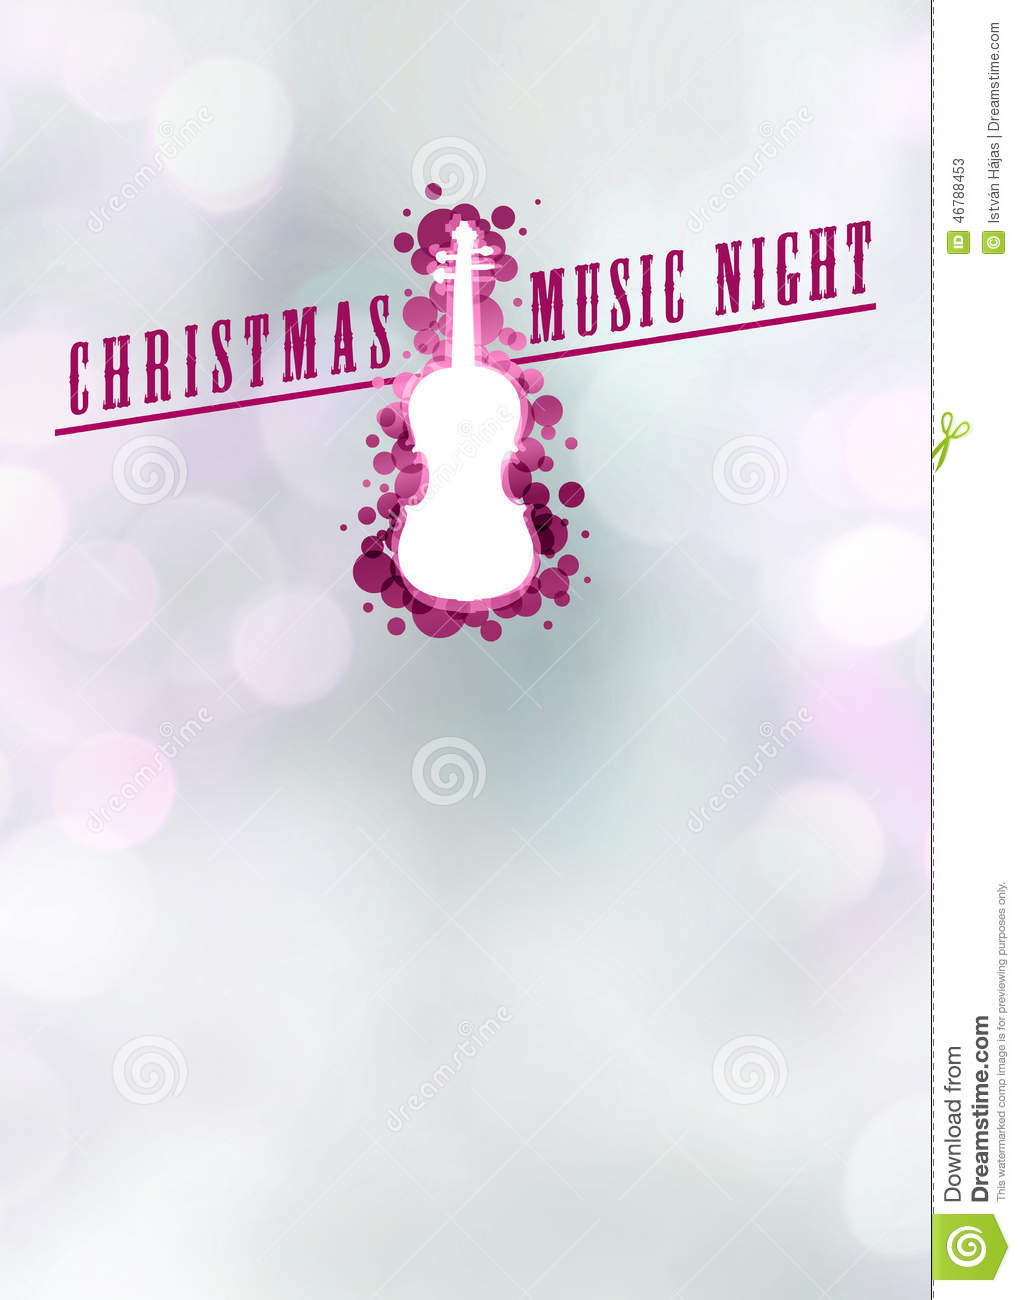 chistmas music or concert background stock photo image  chistmas music or concert background